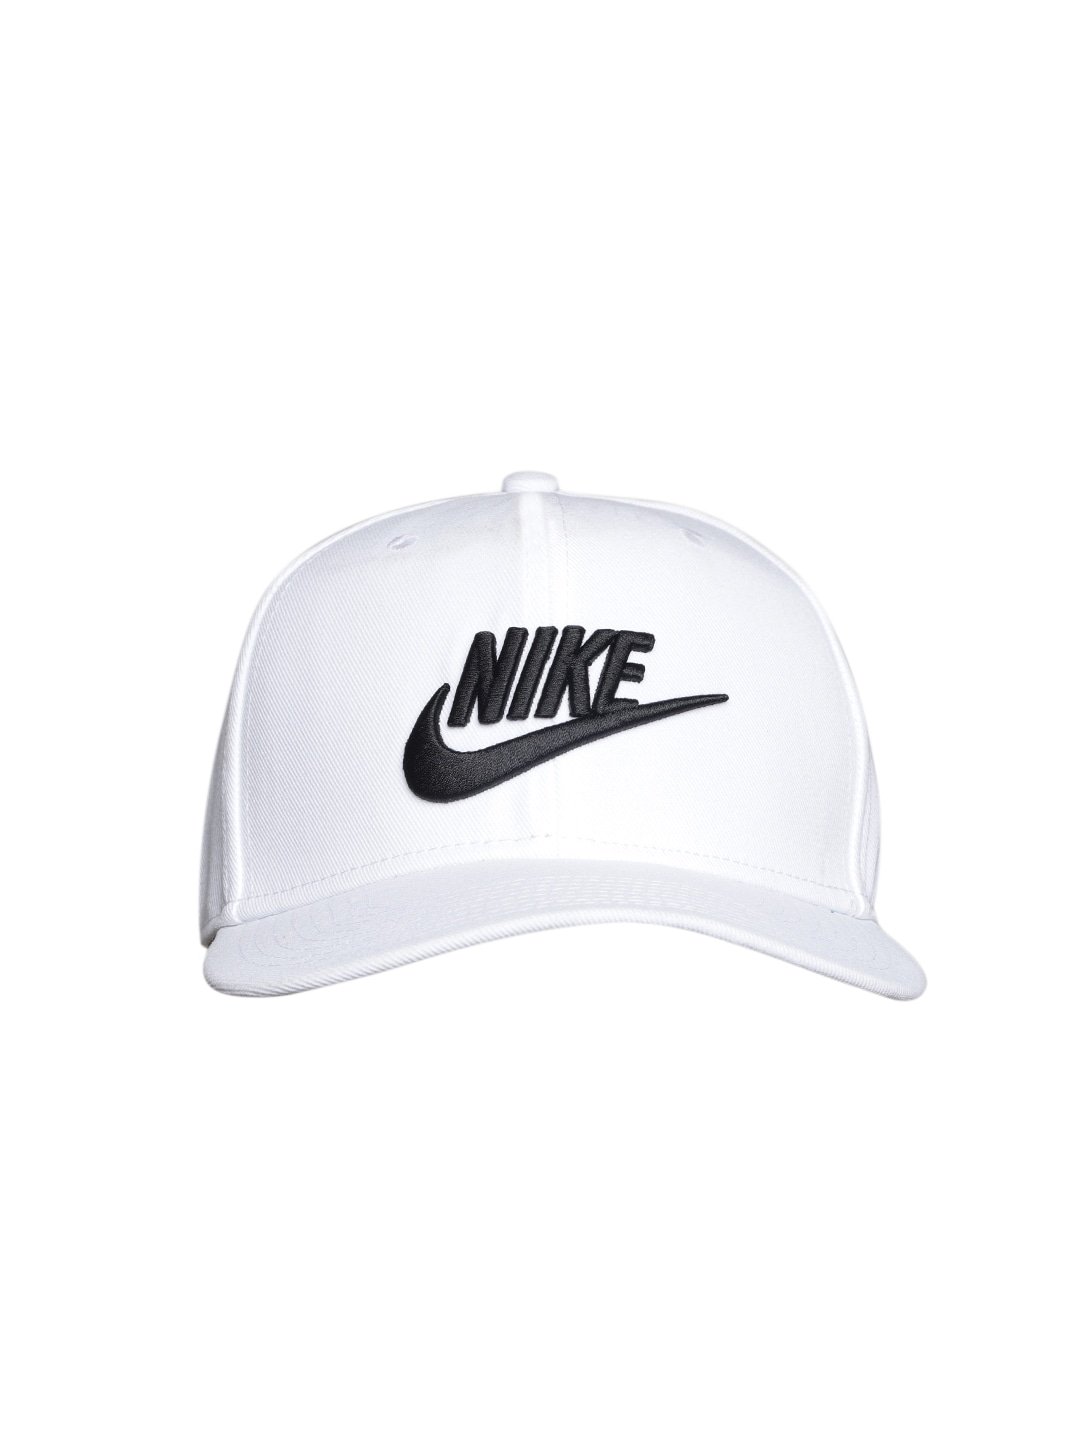 065414e9068 Nike Cap - Buy Nike Caps for Men   Women Online in India